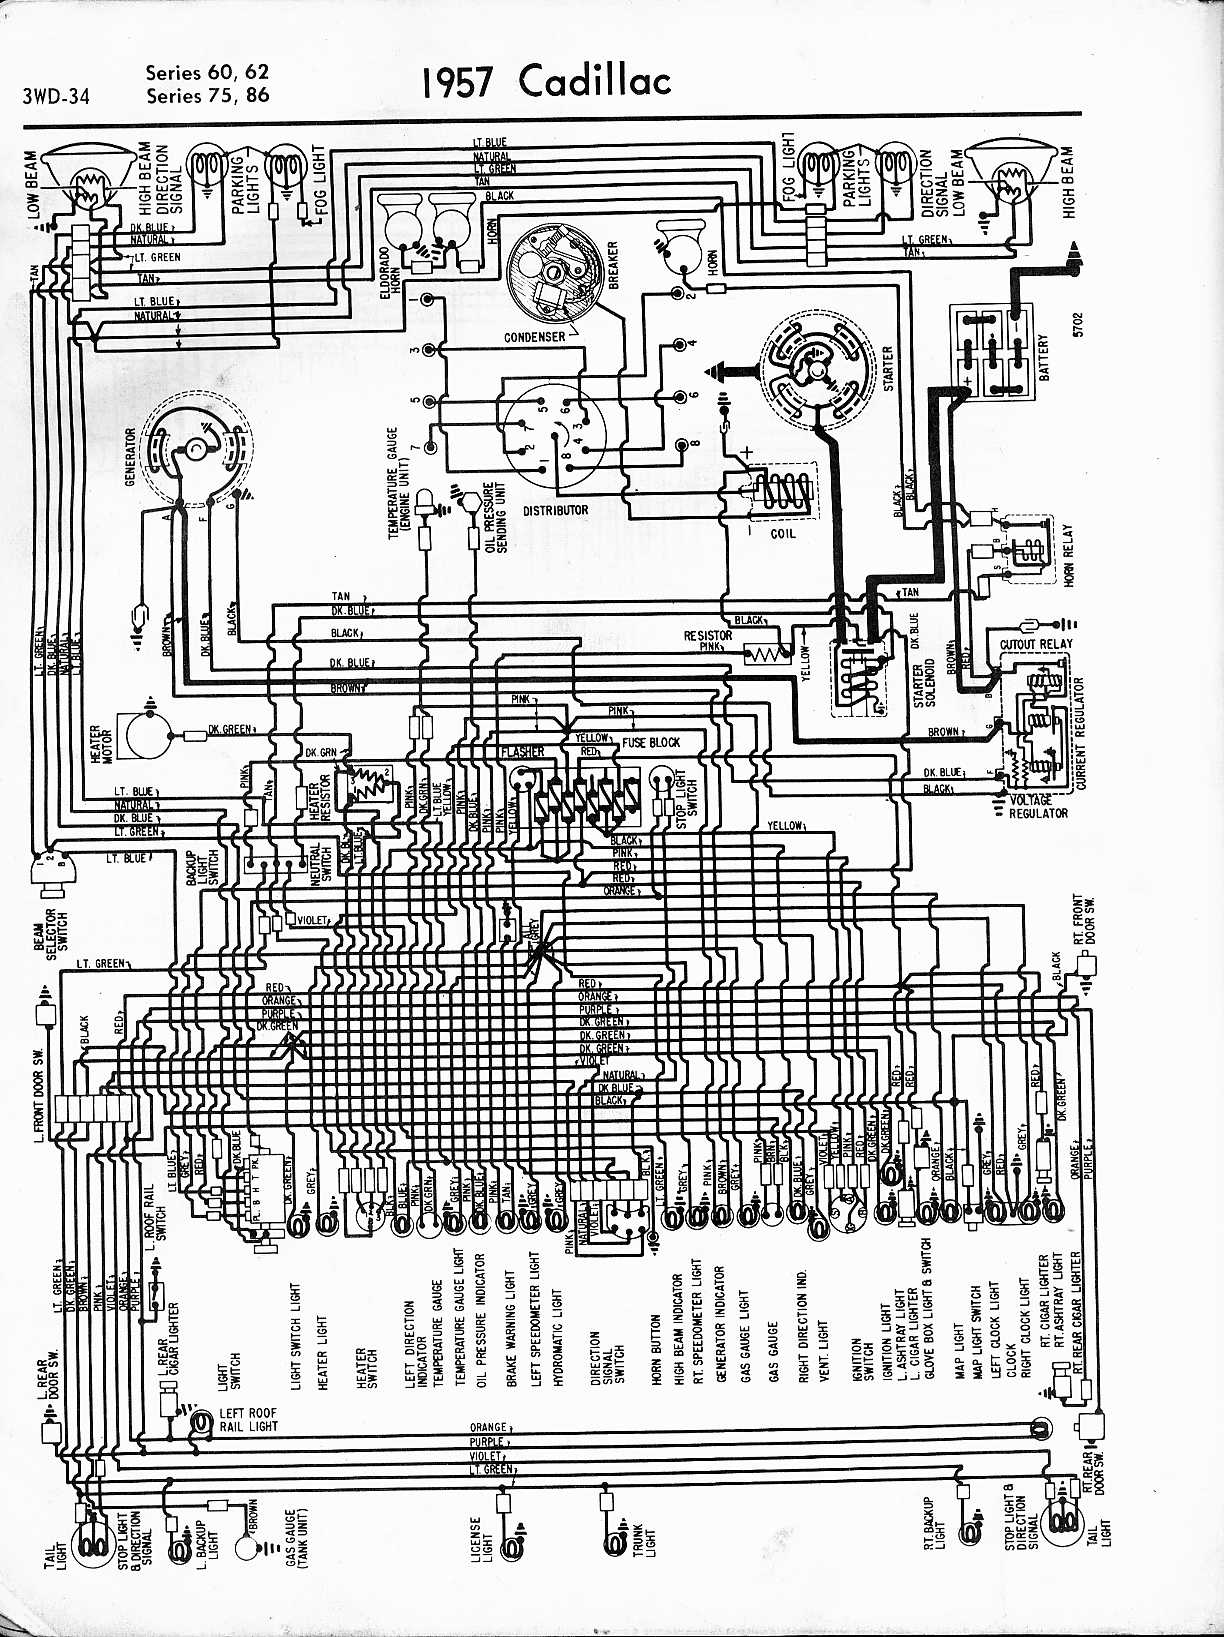 MWireCadi65_3WD 034 cadillac wiring diagrams 1957 1965 2001 cadillac deville wiring diagram at gsmx.co